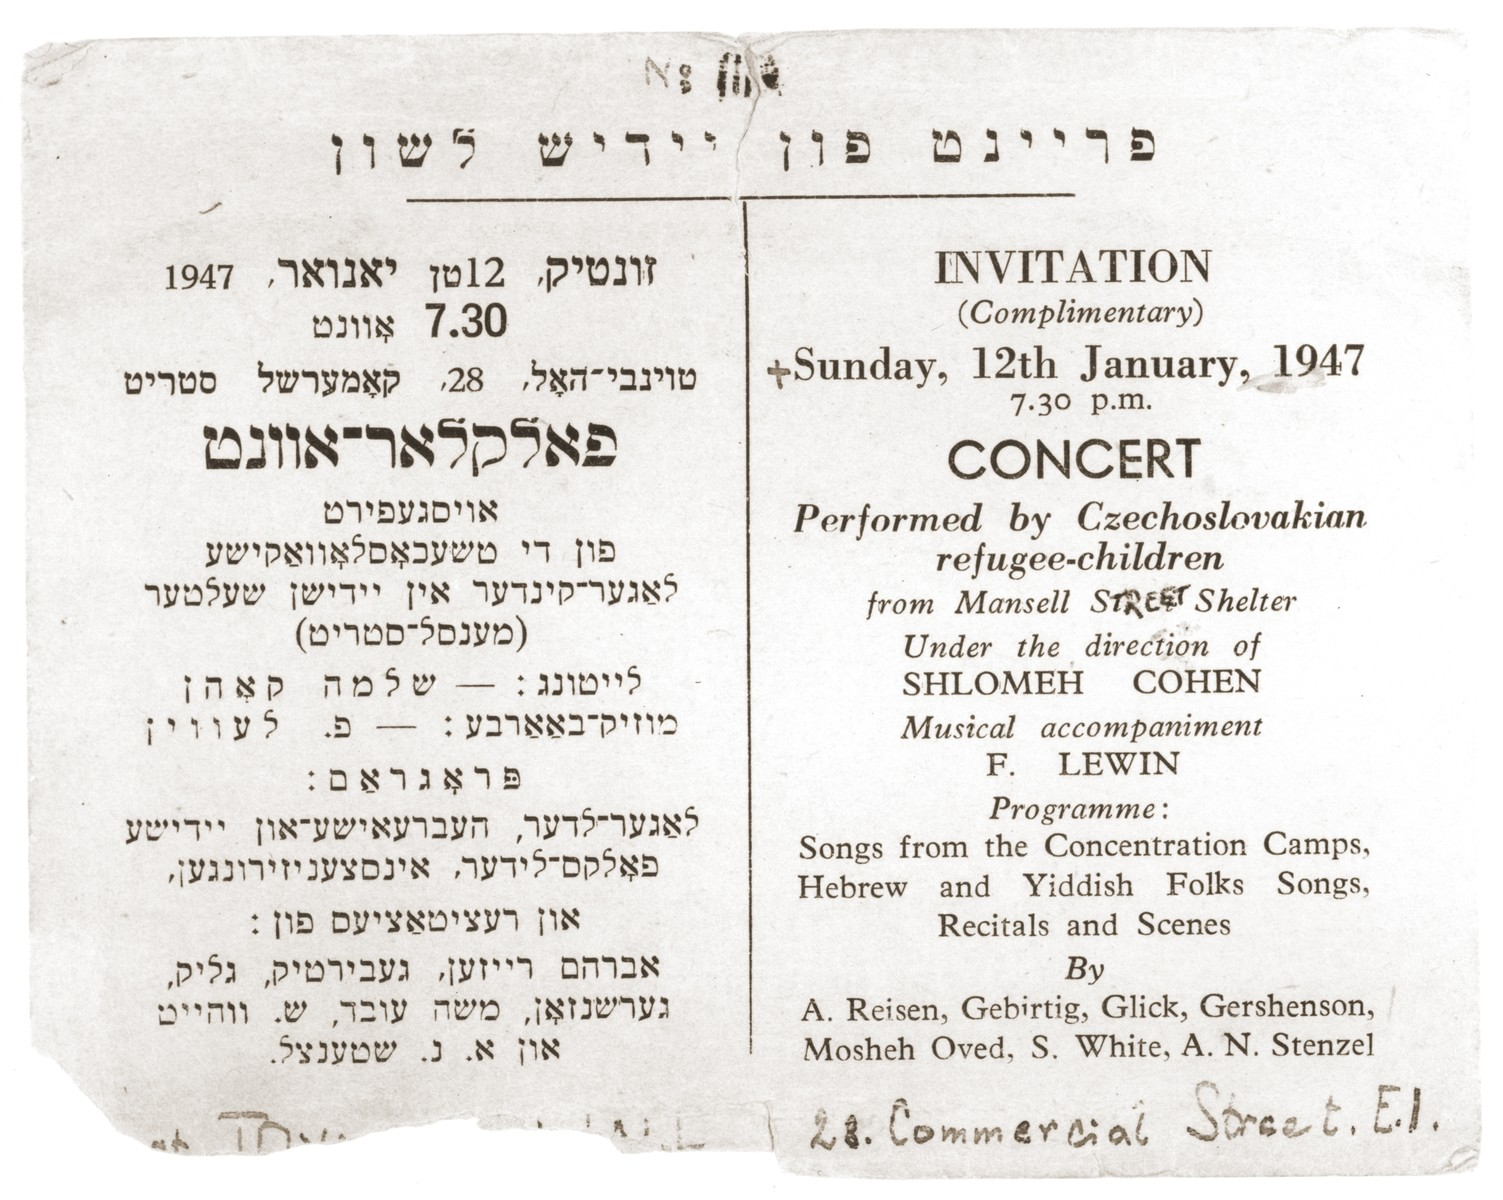 Invitation to a concert of Hebrew and Yiddish songs performed by Czechoslovakian Jewish orphans living at the Mansell Street shelter.